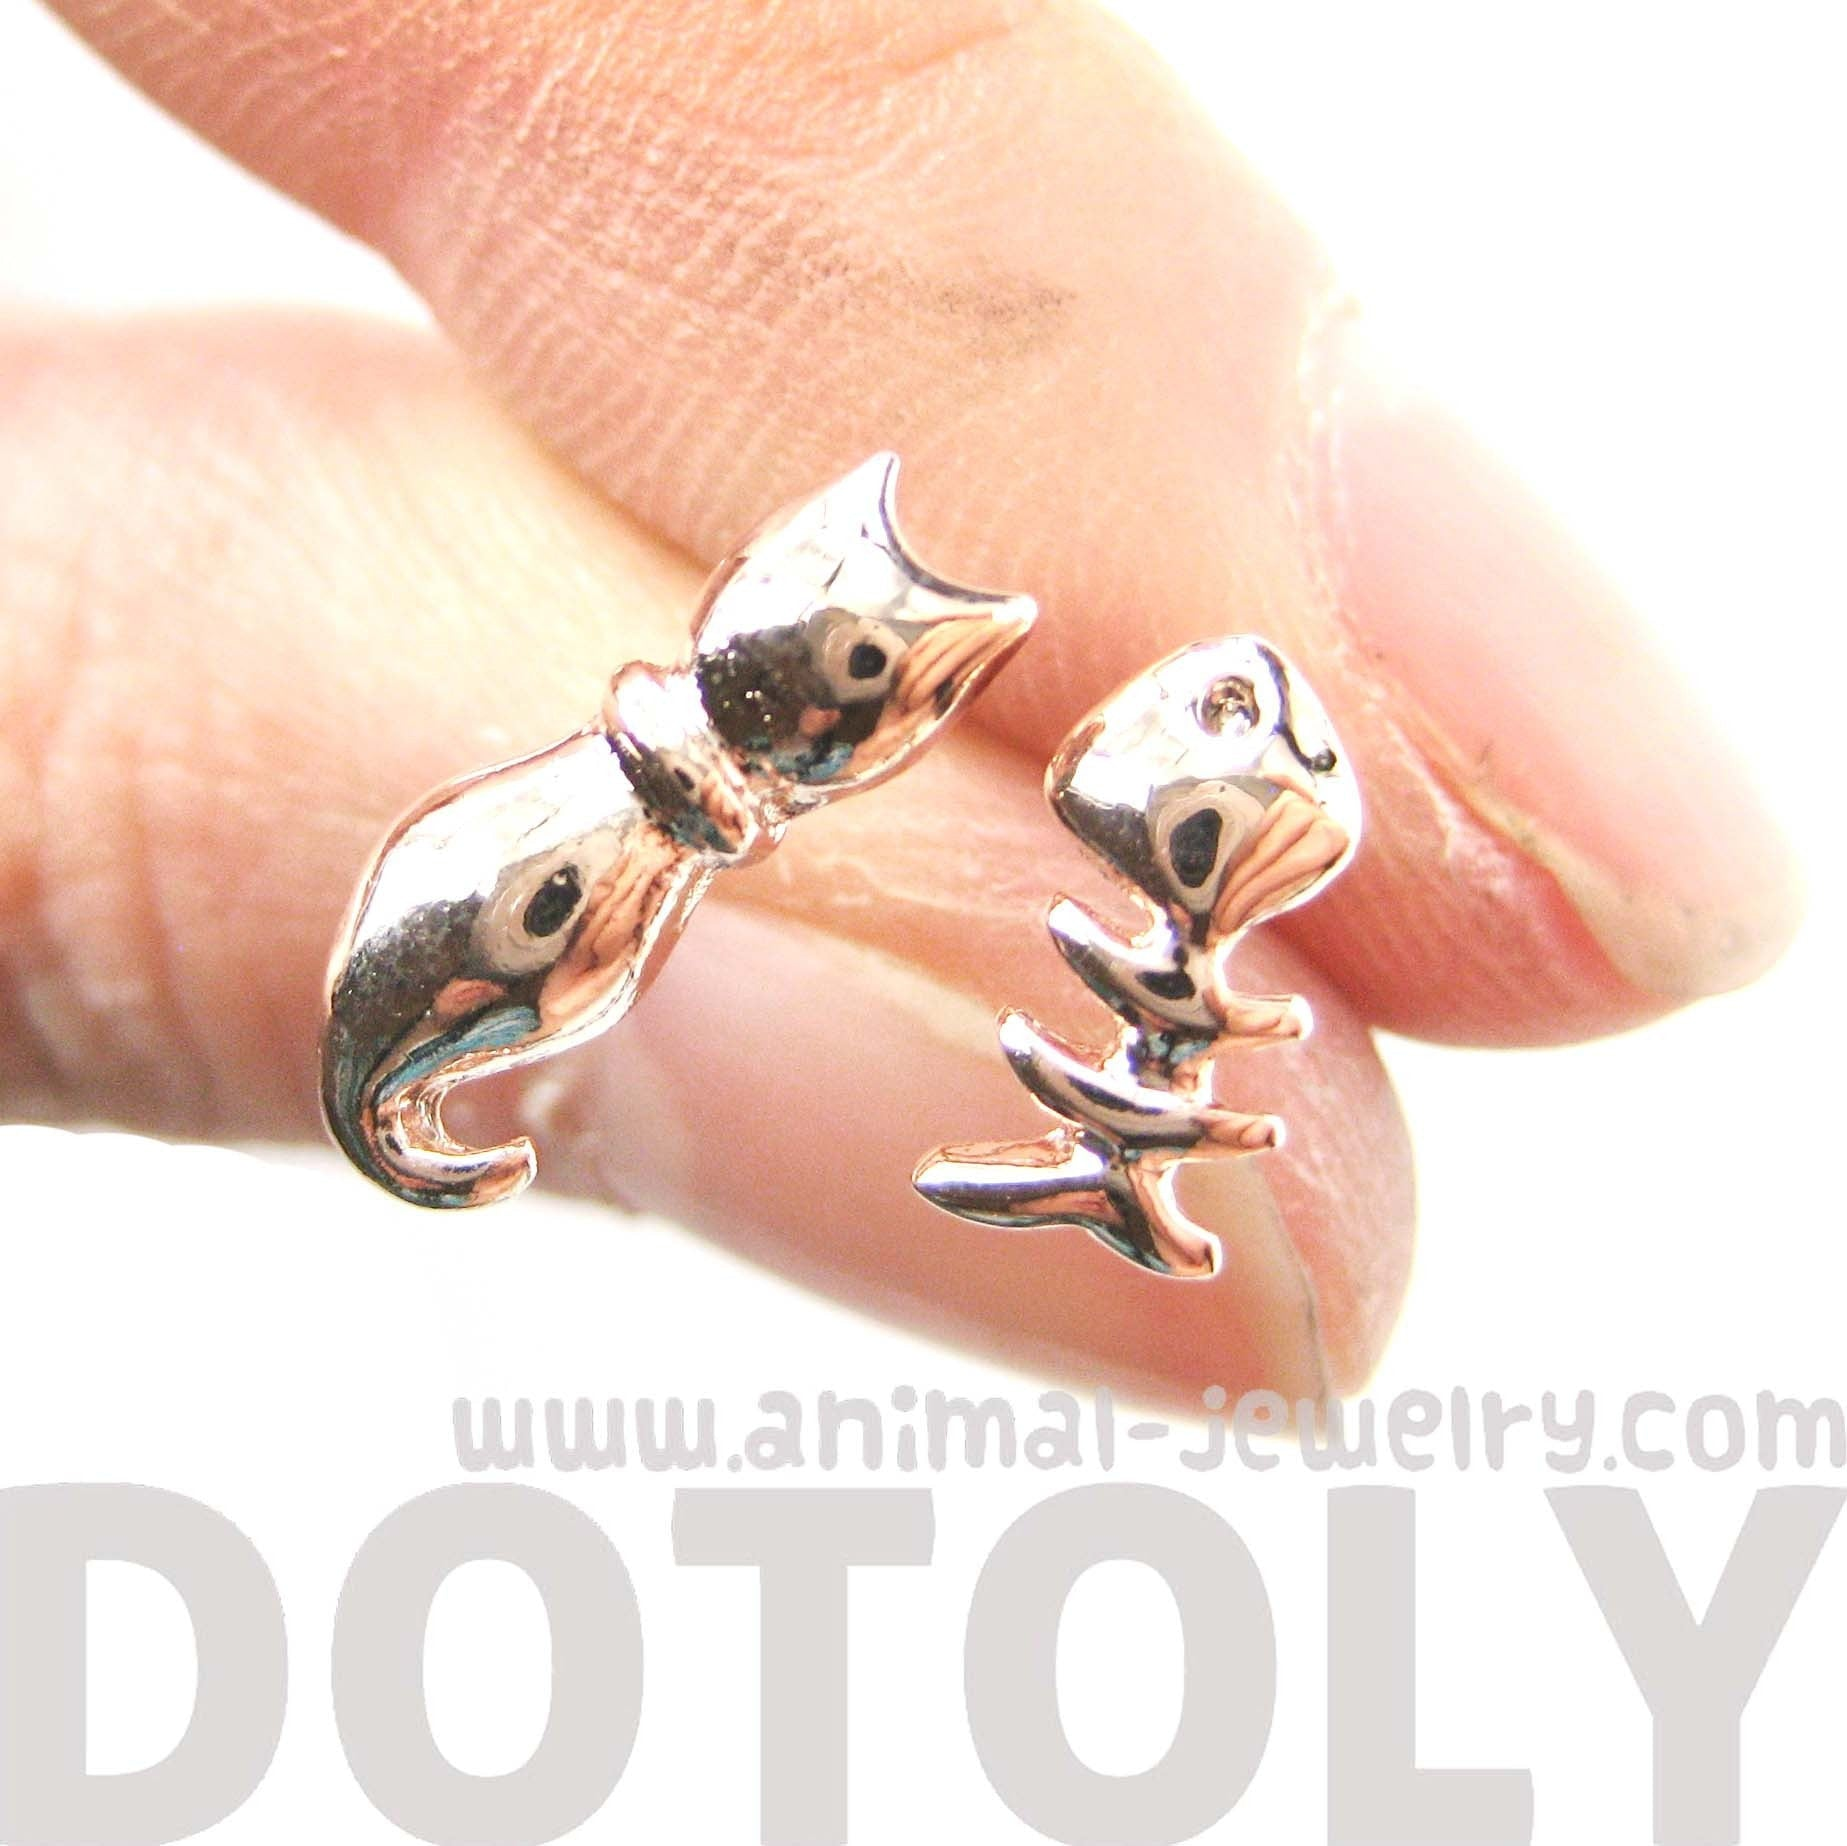 kitty-cat-and-fishbone-skeleton-animal-shaped-stud-earrings-in-rose-gold